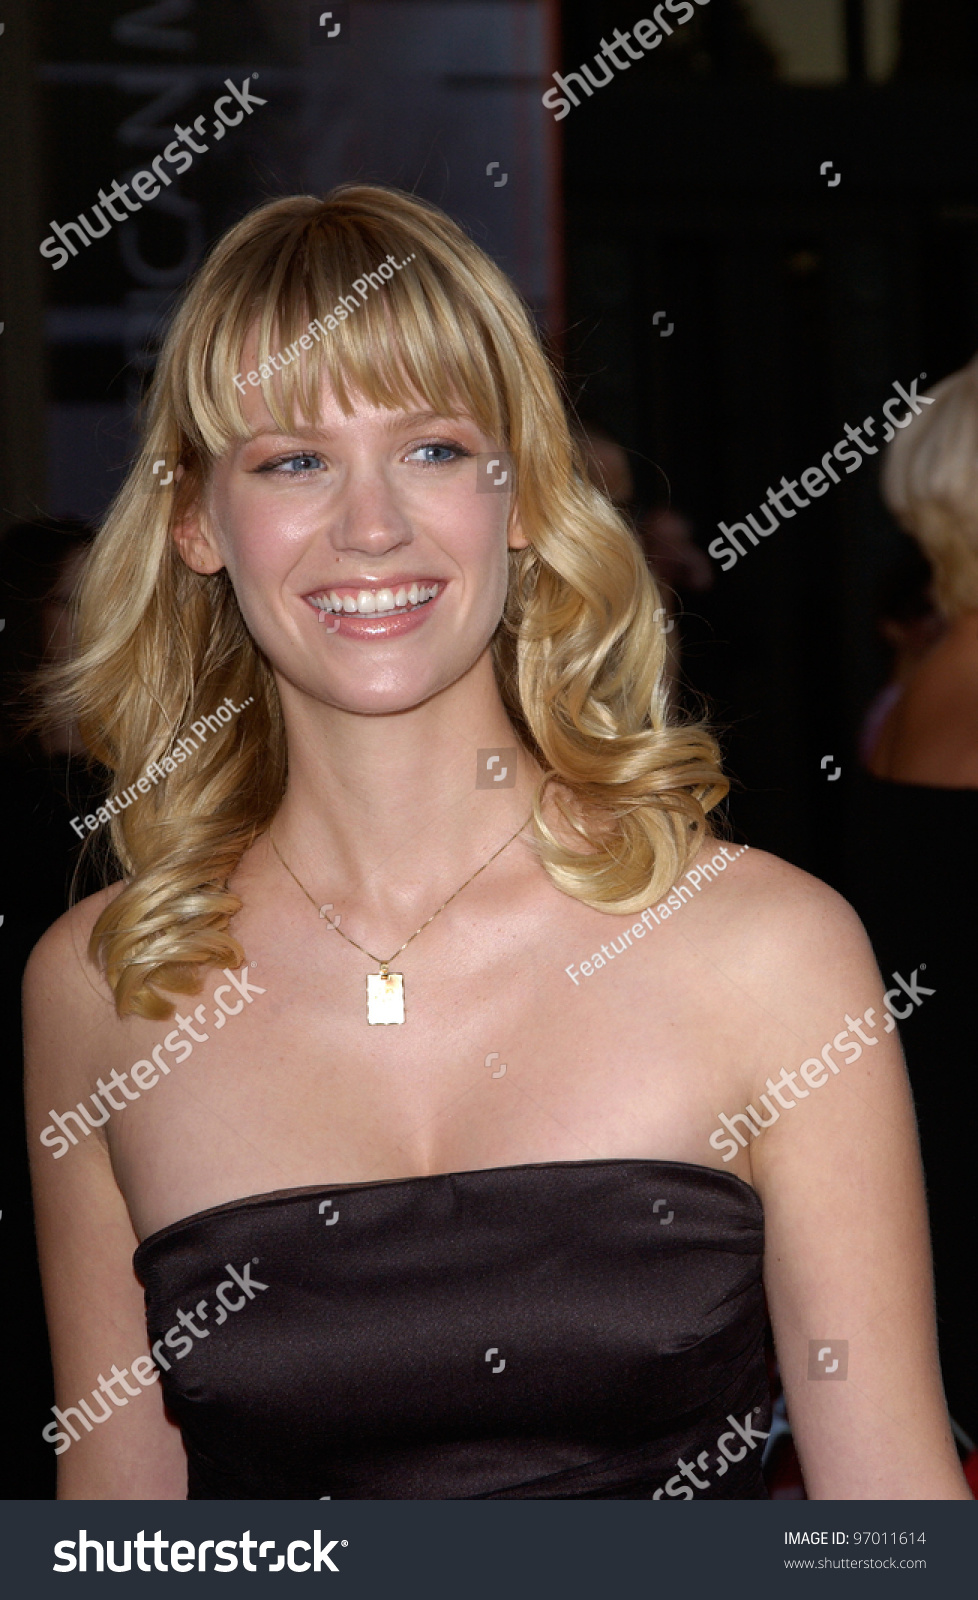 20041114: Los Angeles, Ca: Actress January Jones At The ...